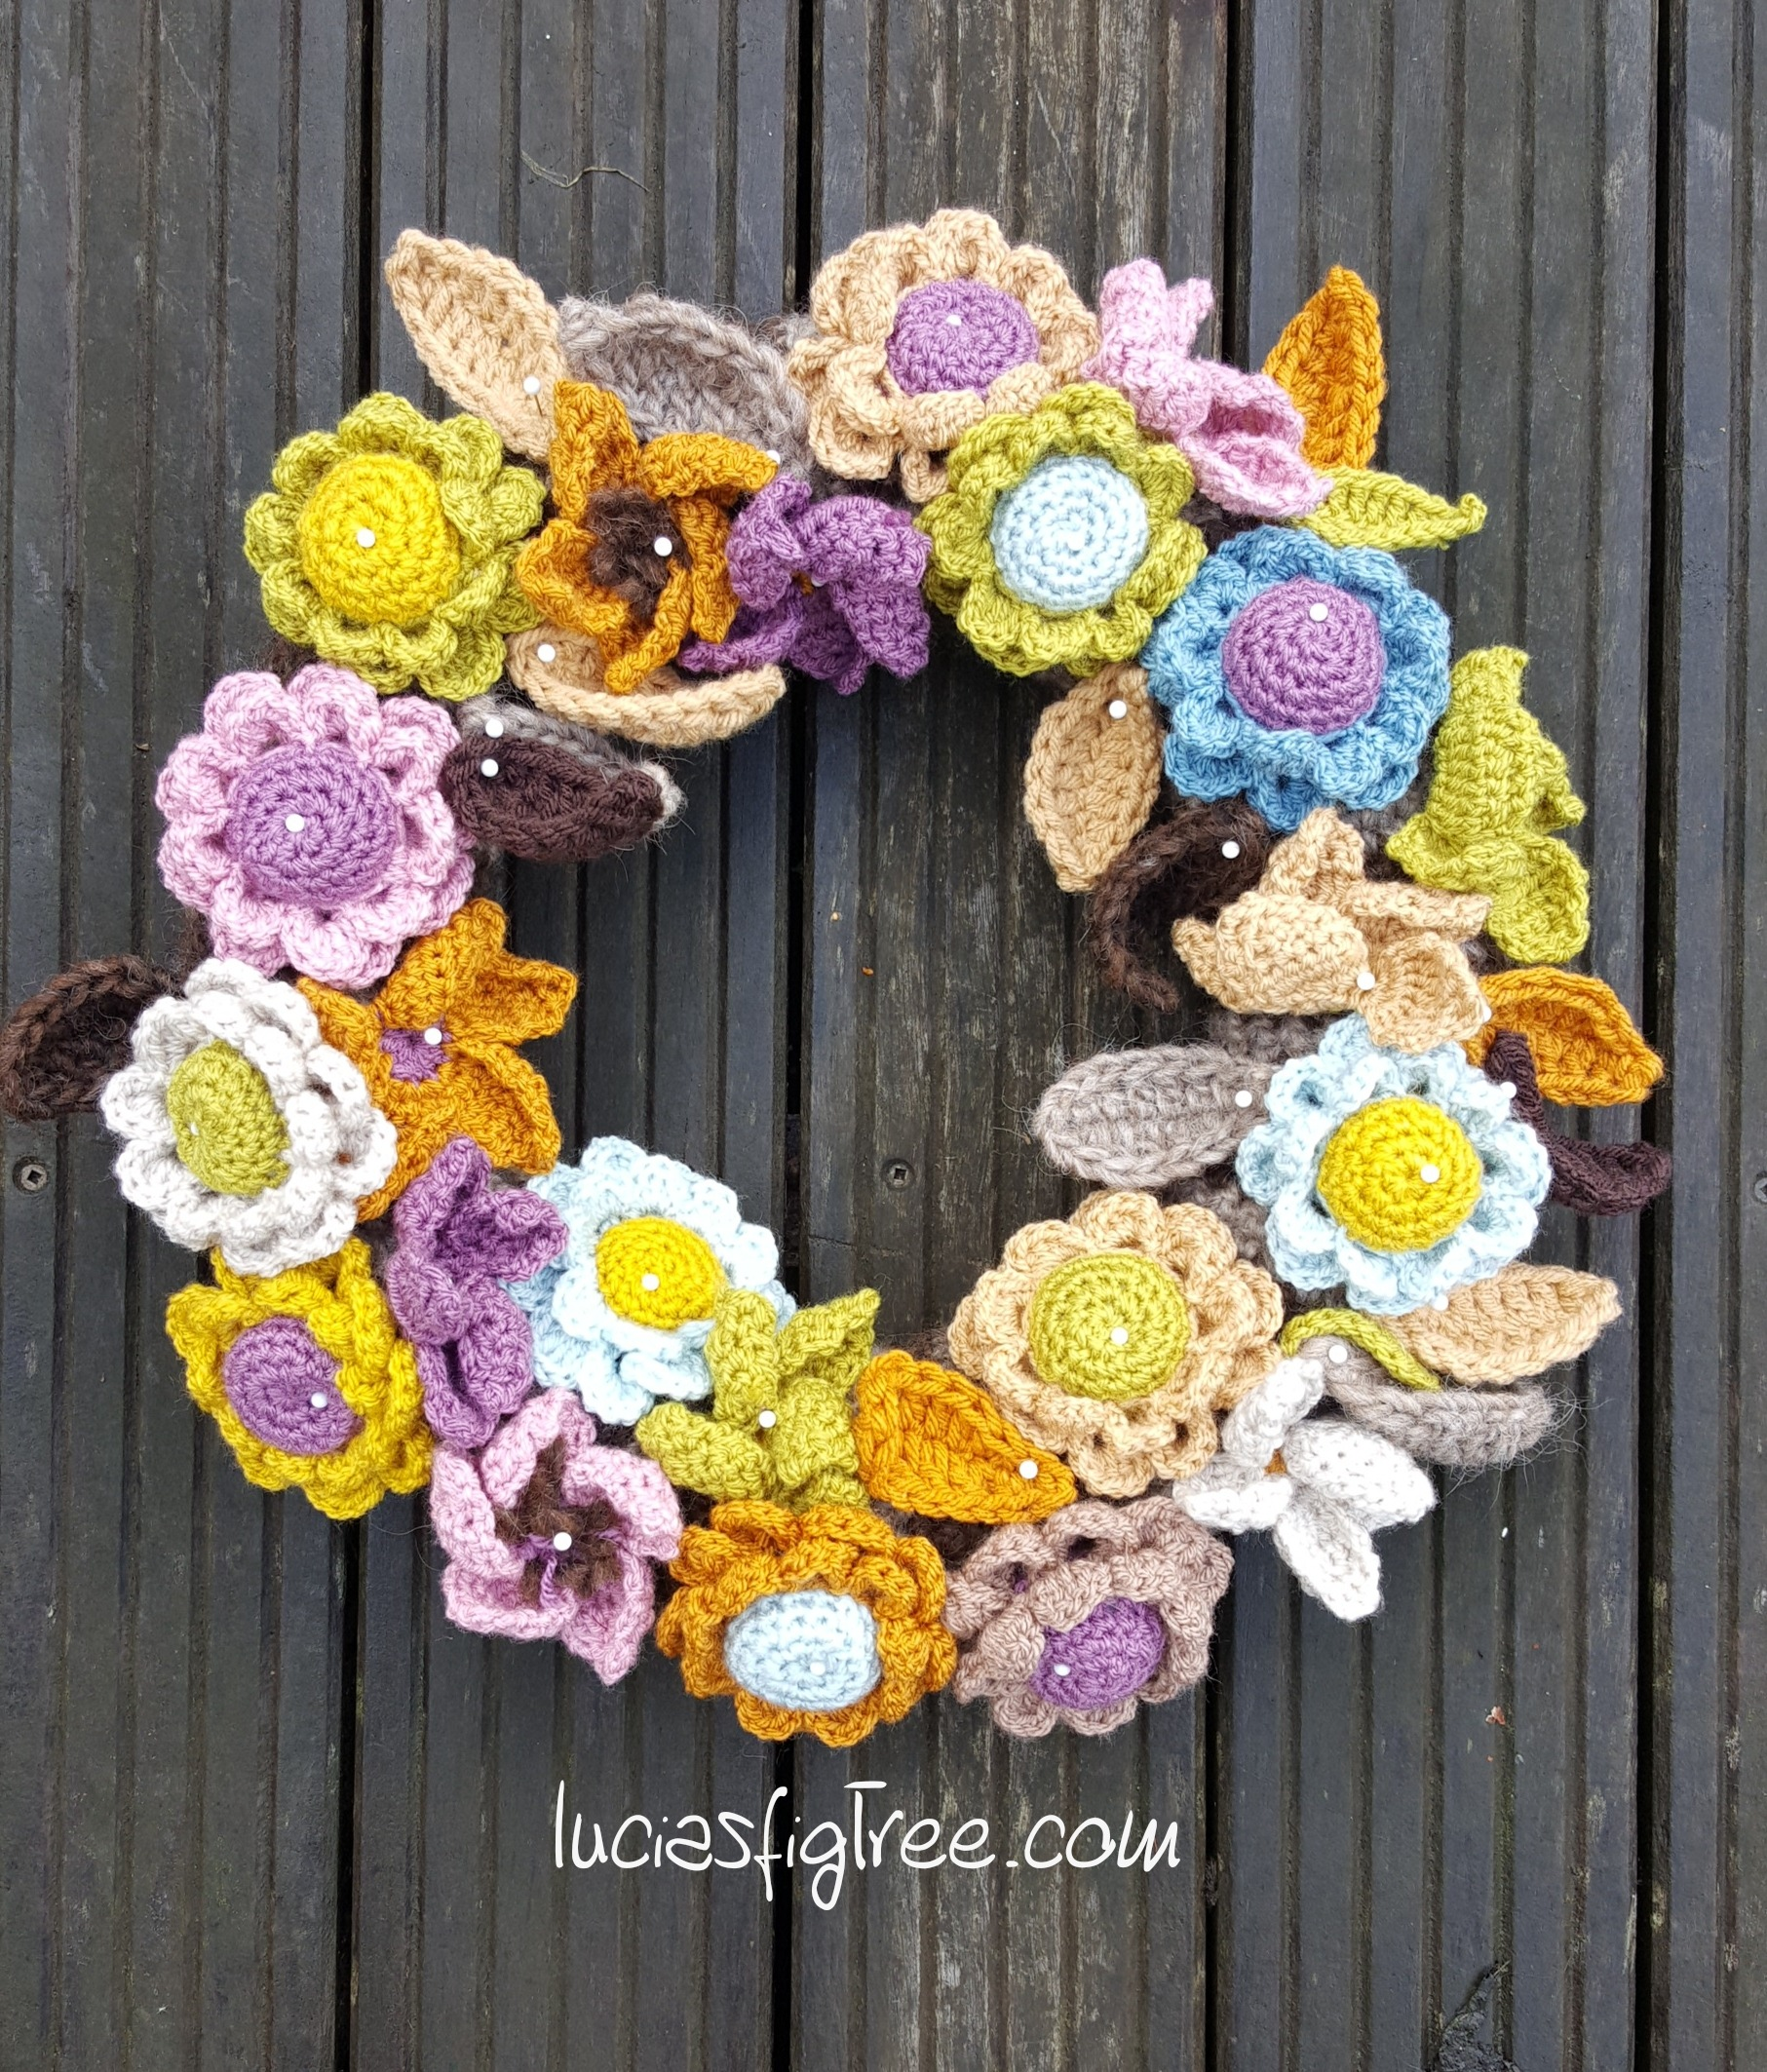 I Have Pulled Together Theinformations For The Flowers Wreath It With Crochet S Found A Few Patterns Made As Said Couple Of Years Ago Guess Must Been Bit Bored And When Am My Current Wips Or Tired